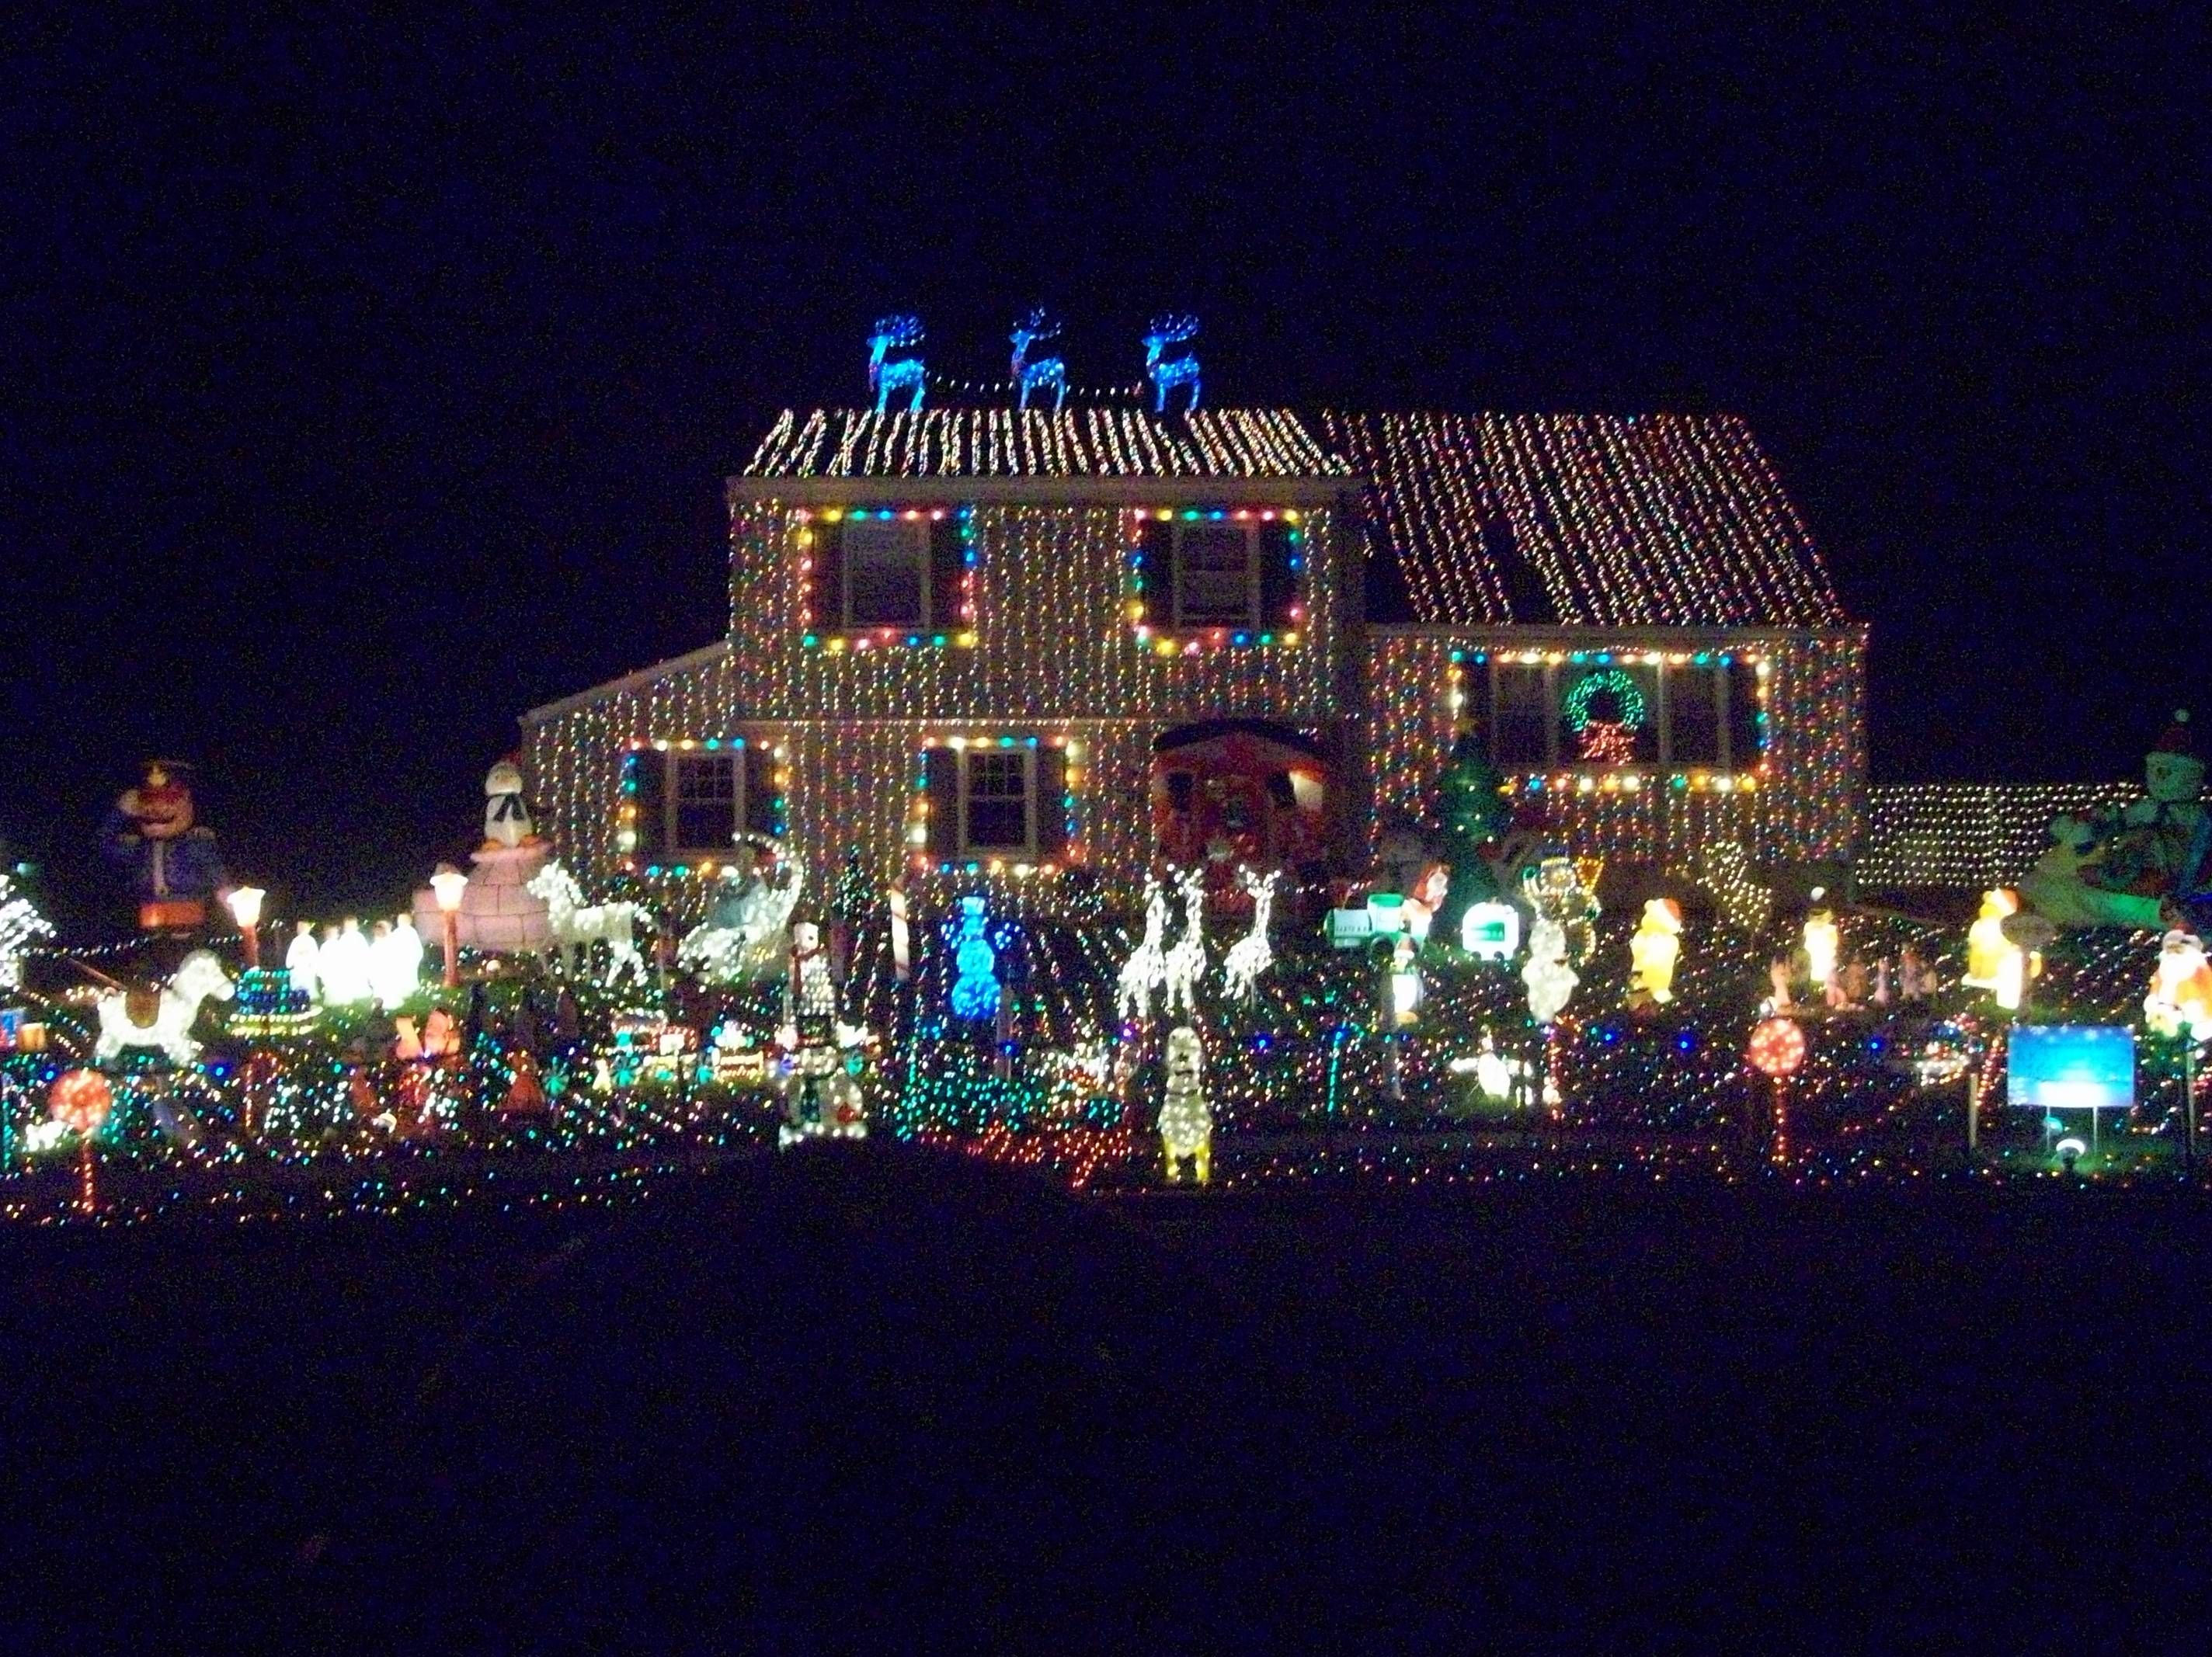 These homes take decorating for the holidays extremely seriously ...